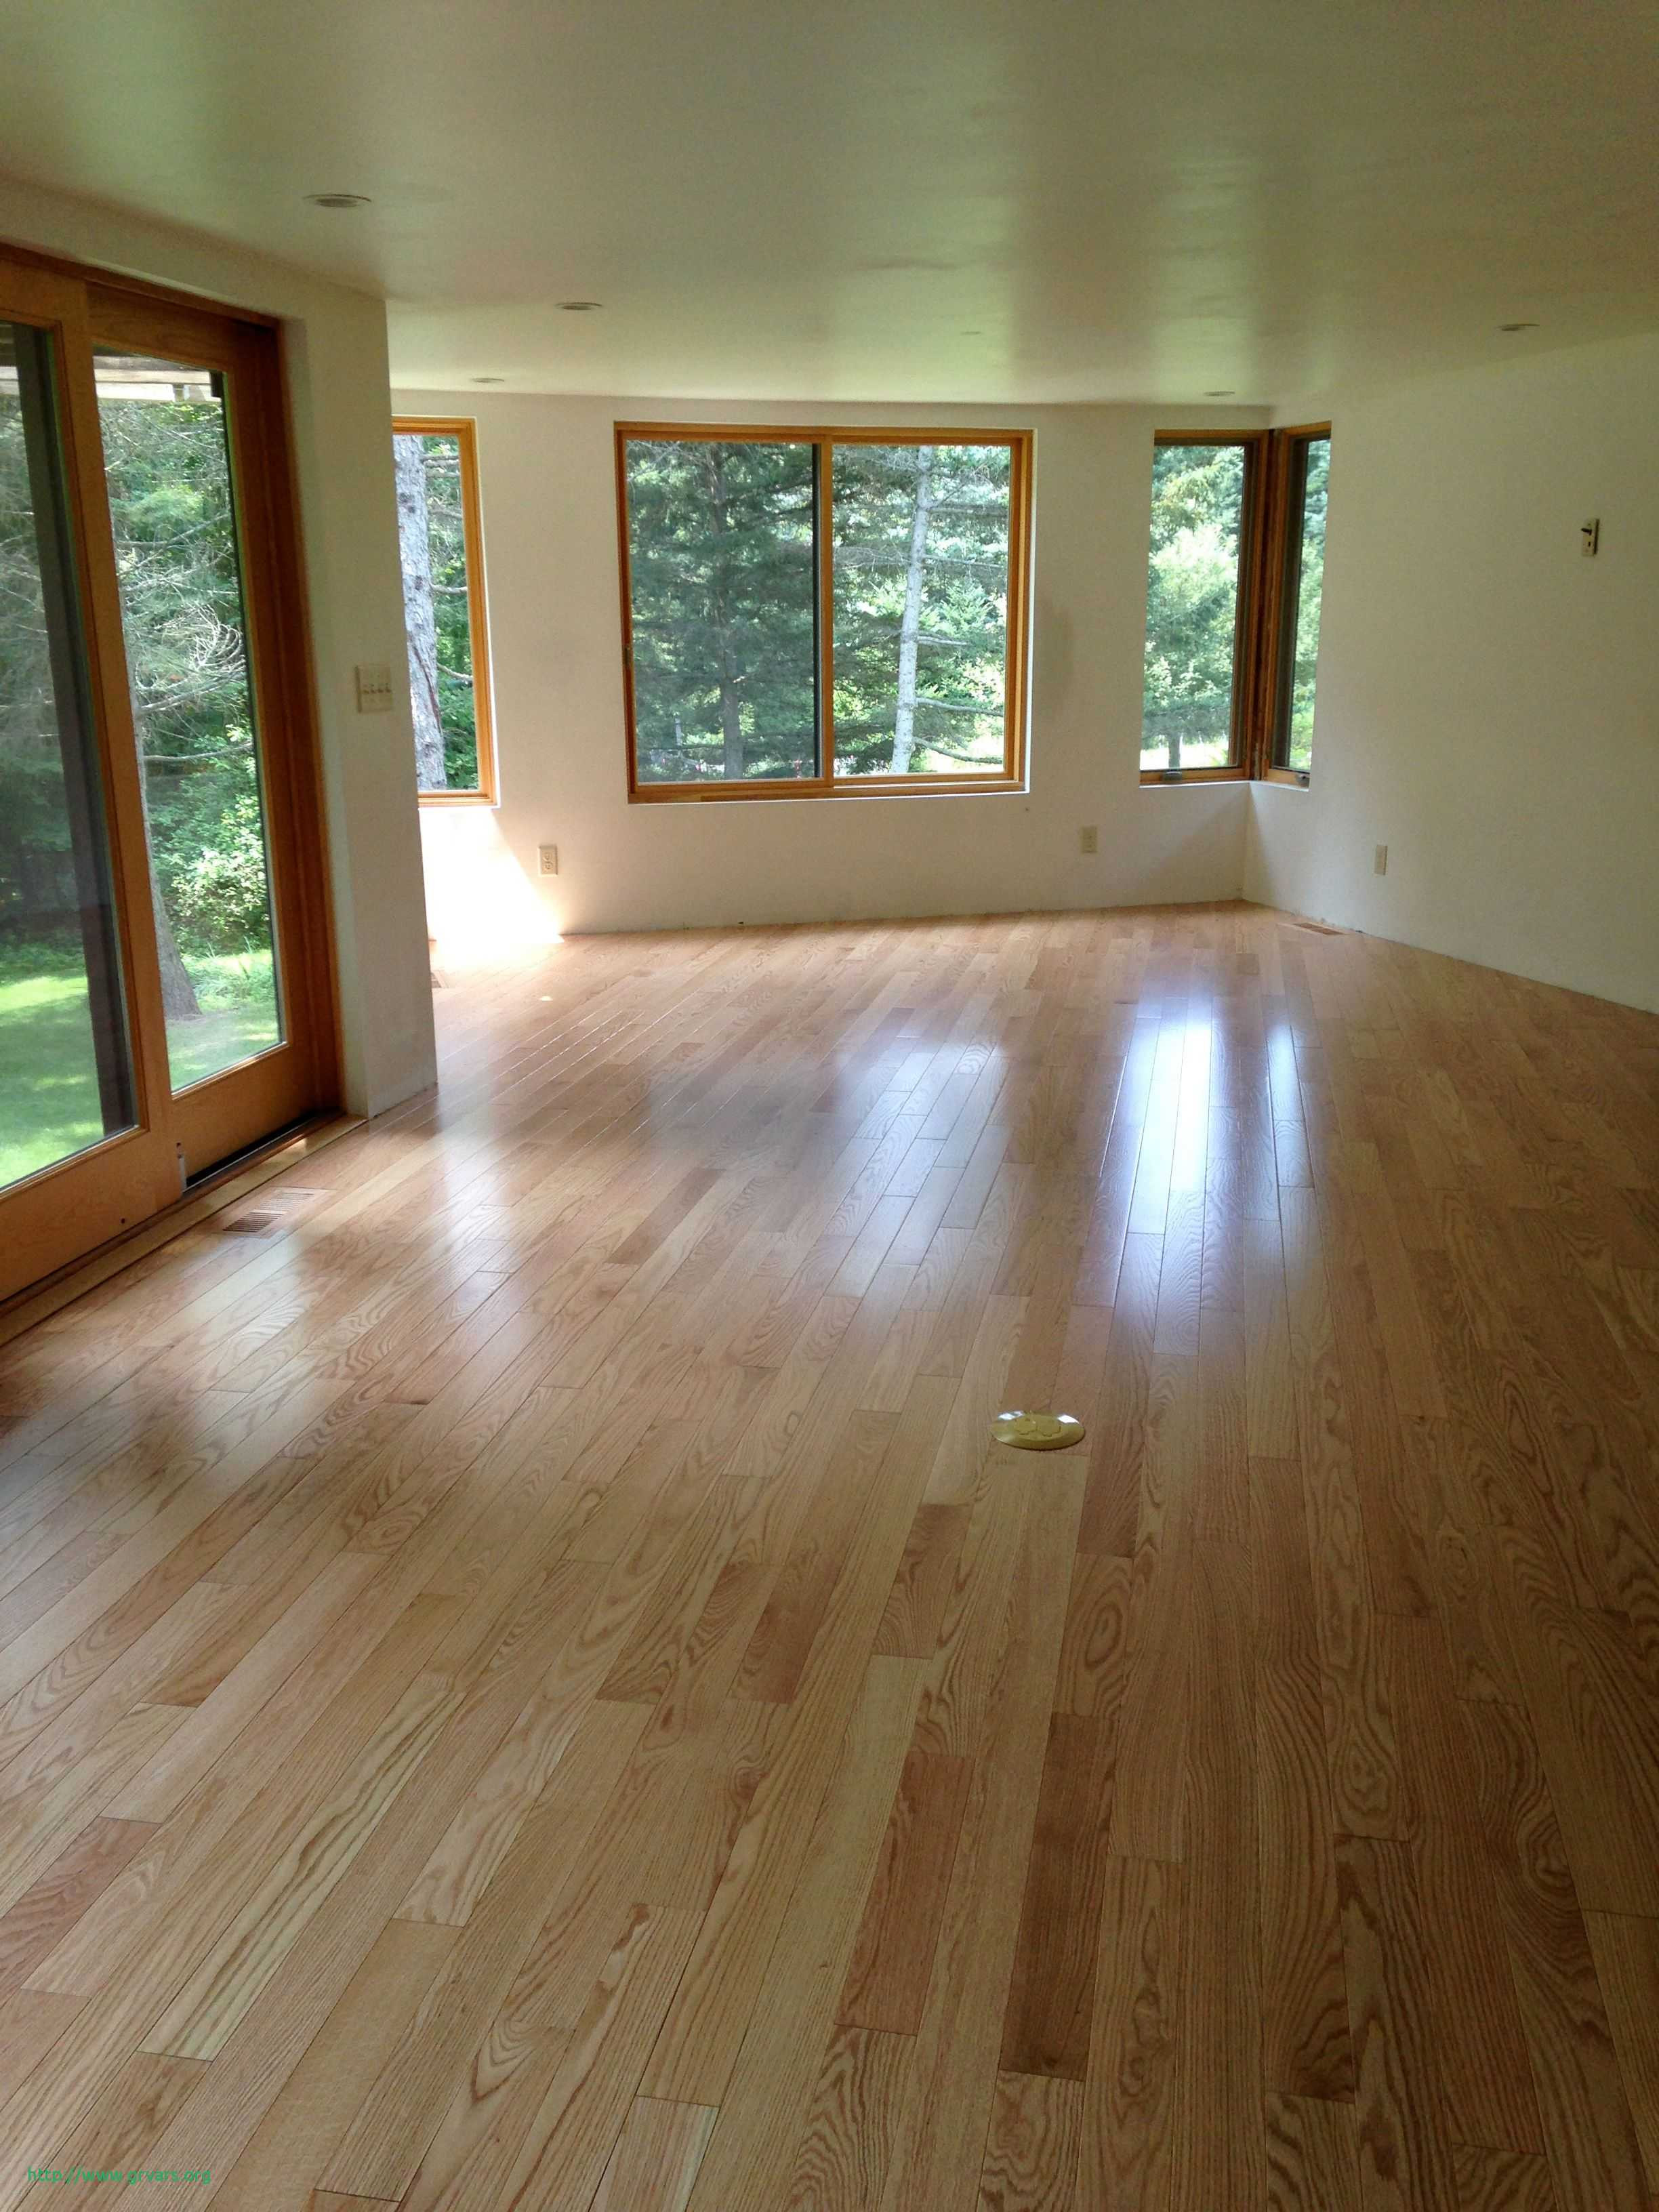 cost to refinish hardwood floors nyc of 21 nouveau how much does it cost to have hardwood floors refinished inside hardwood floor refinishing is an affordable way to spruce up your space without a full replacement